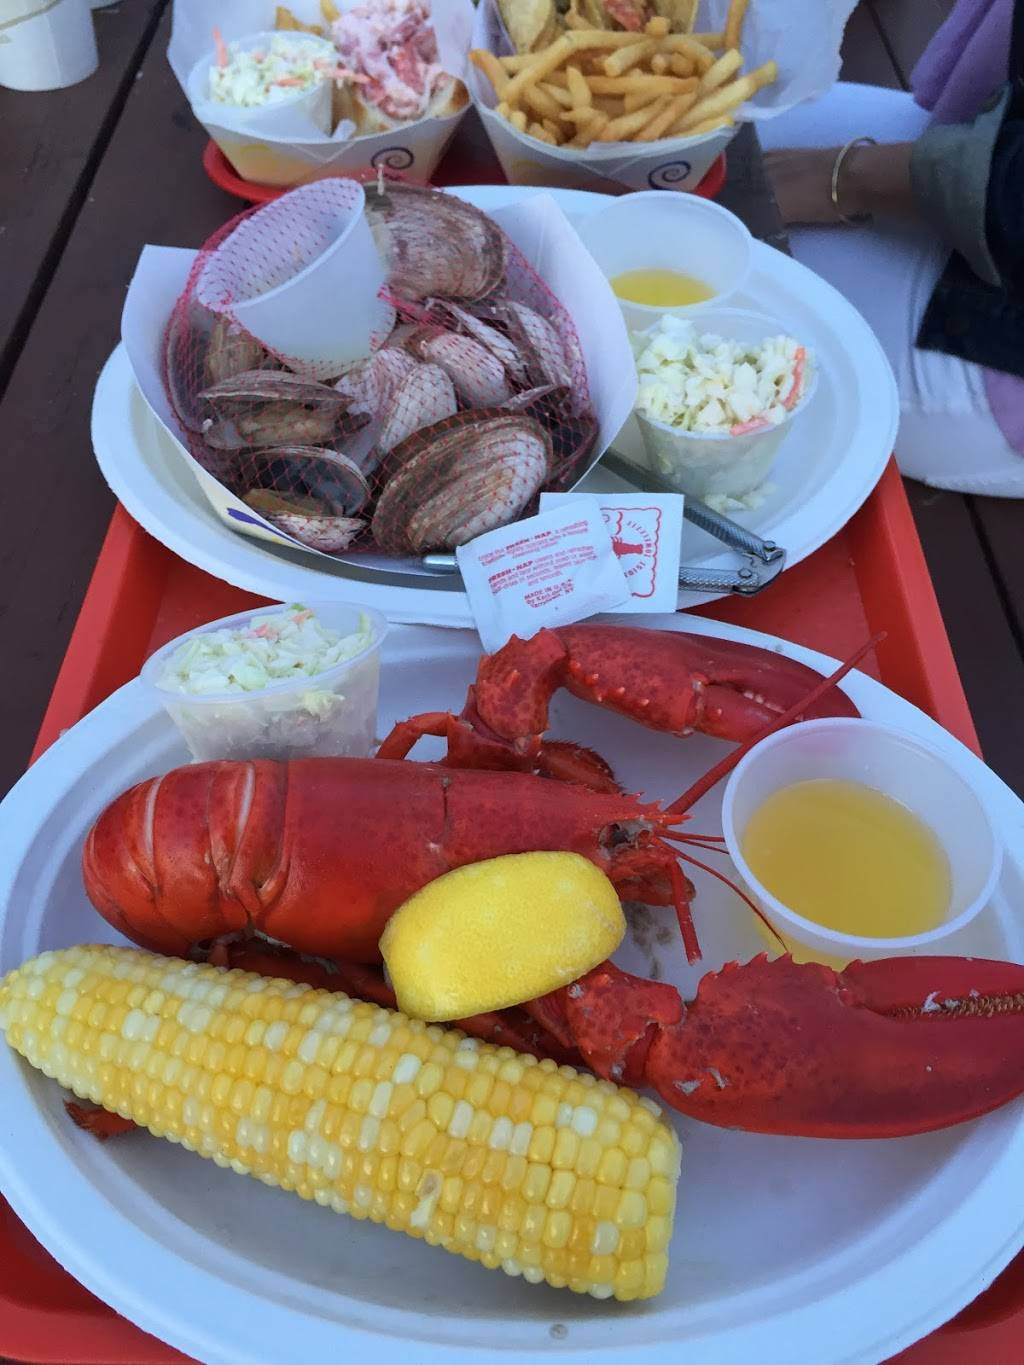 Holbrooks Lobster Wharf + Grille | restaurant | 984 Cundys Harbor Rd, Harpswell, ME 04079, USA | 2077299050 OR +1 207-729-9050